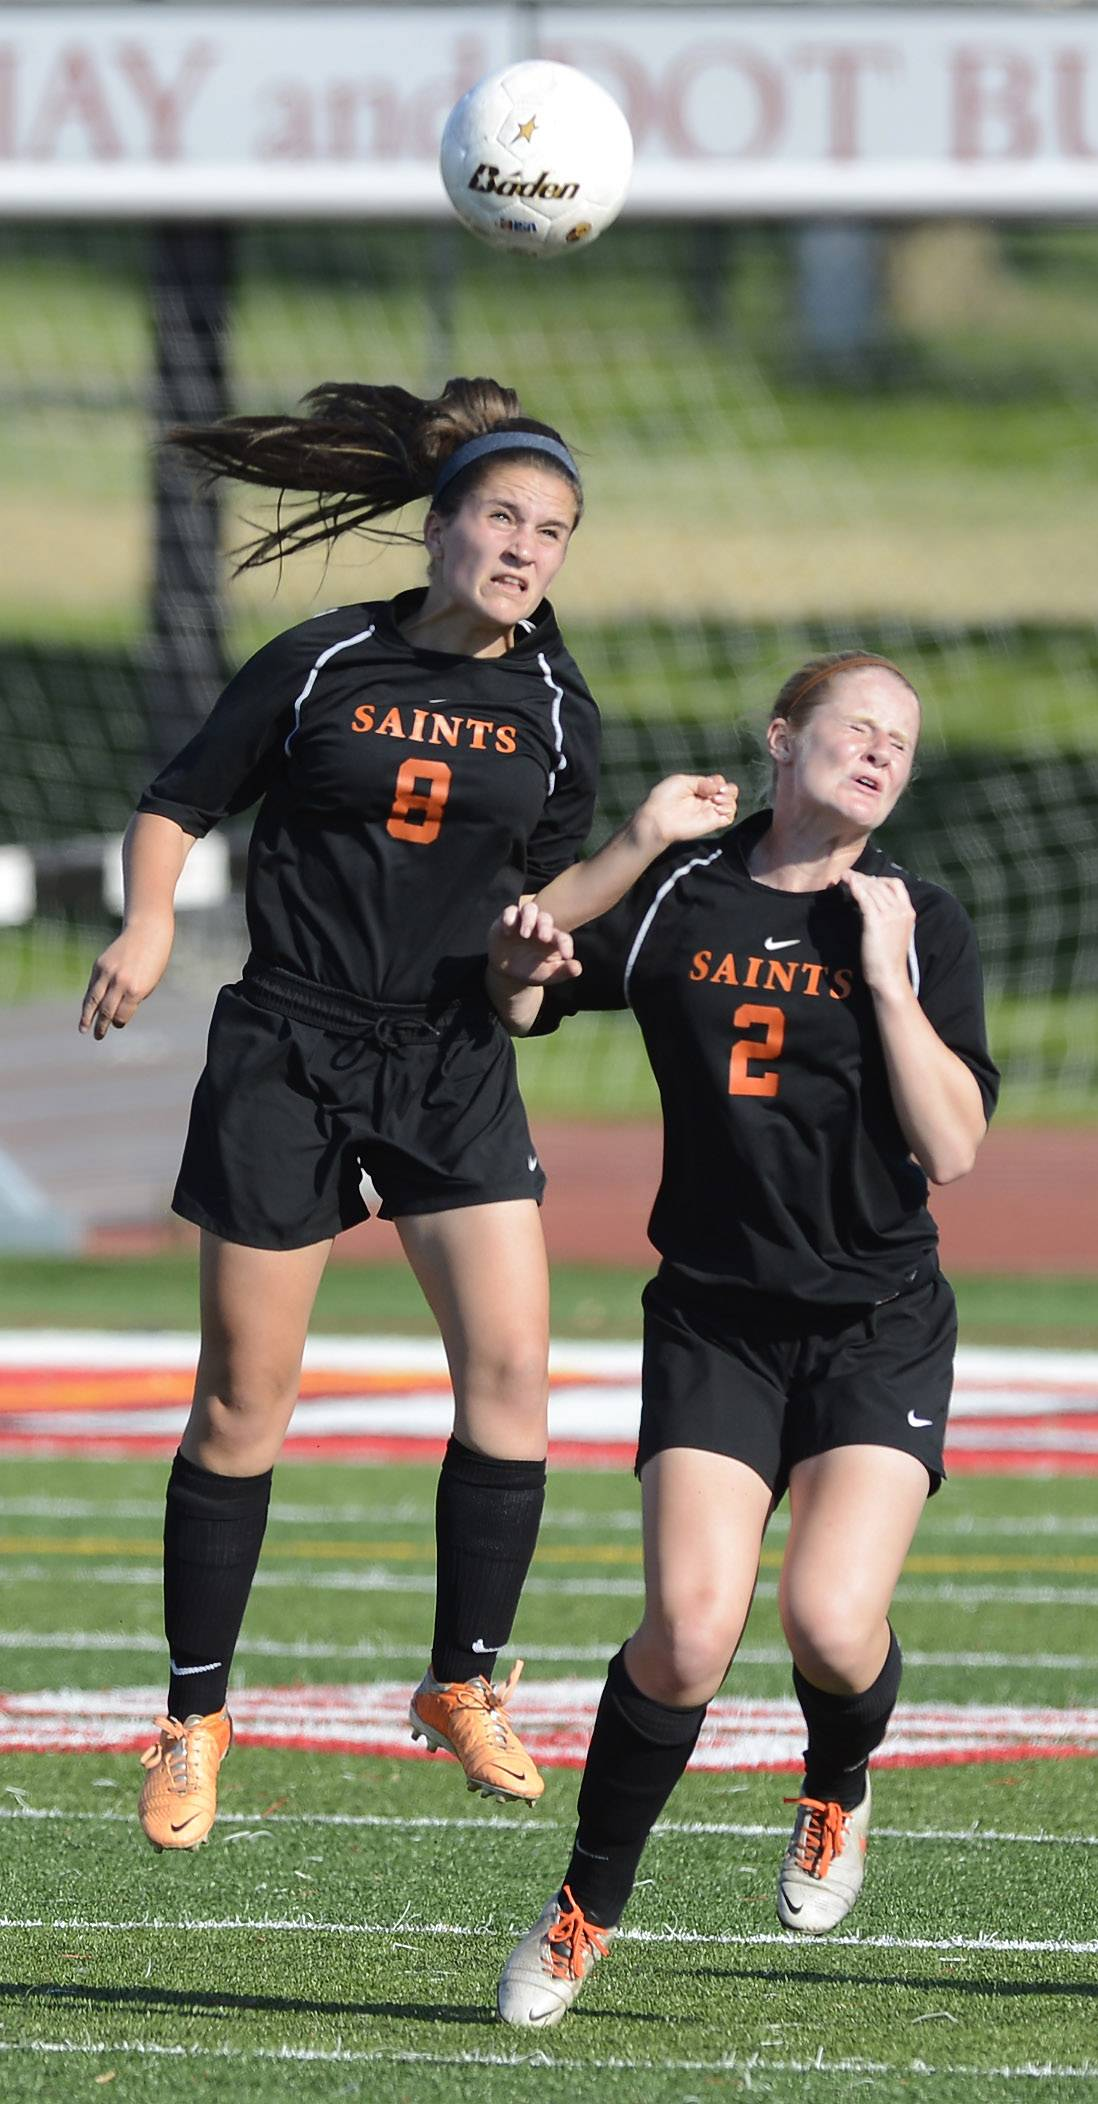 Sarah Beutow, left, and Julia Peterson of St. Charles East both leap for a header during the girls soccer Class 3A state semifinal against Lincoln Way North at North Central College in Naperville Friday.